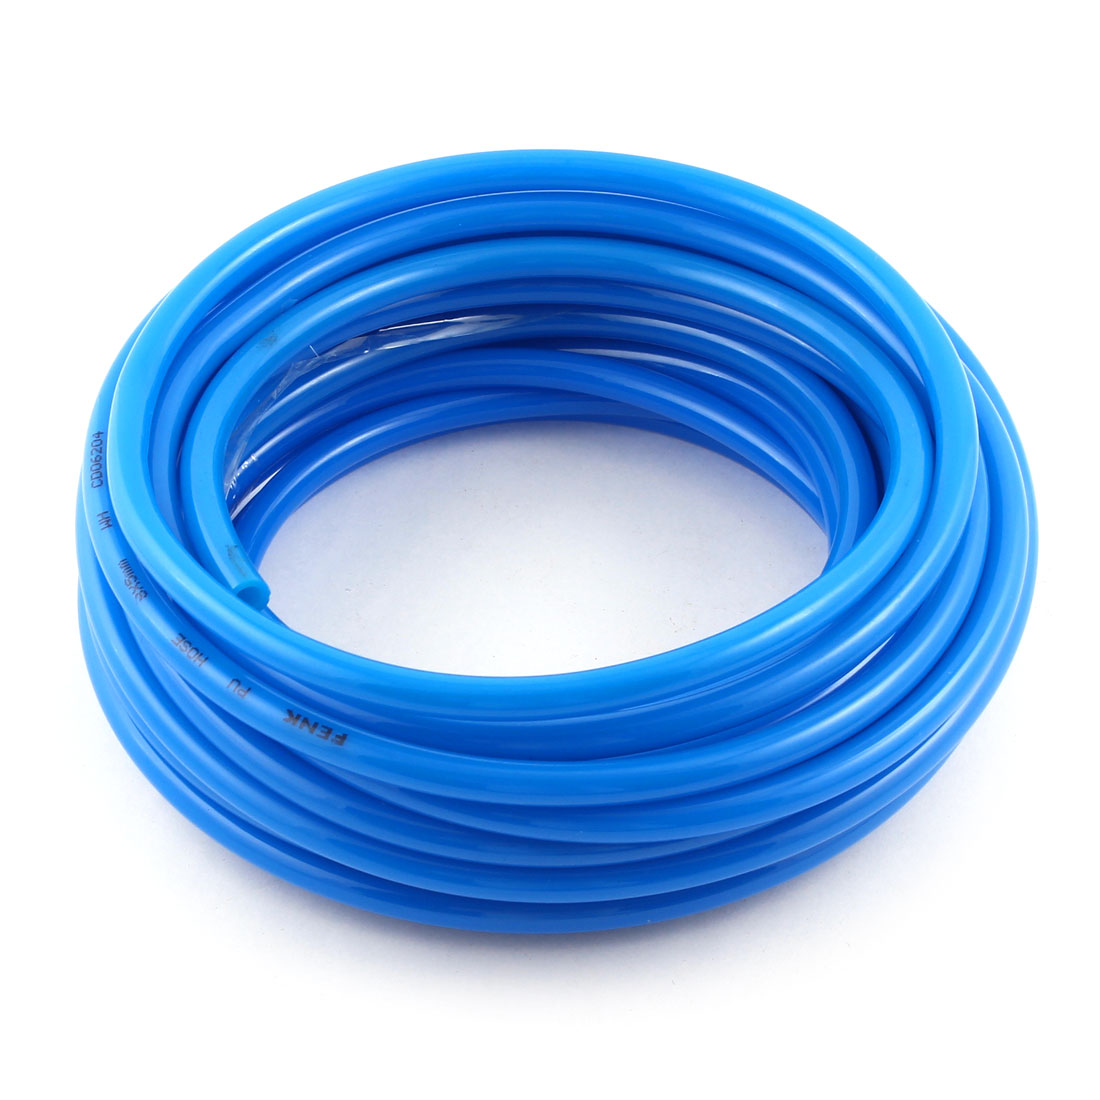 10M 33ft Long 8mmx5mm Pneumatic Air PU Hose Pipe Tube Blue